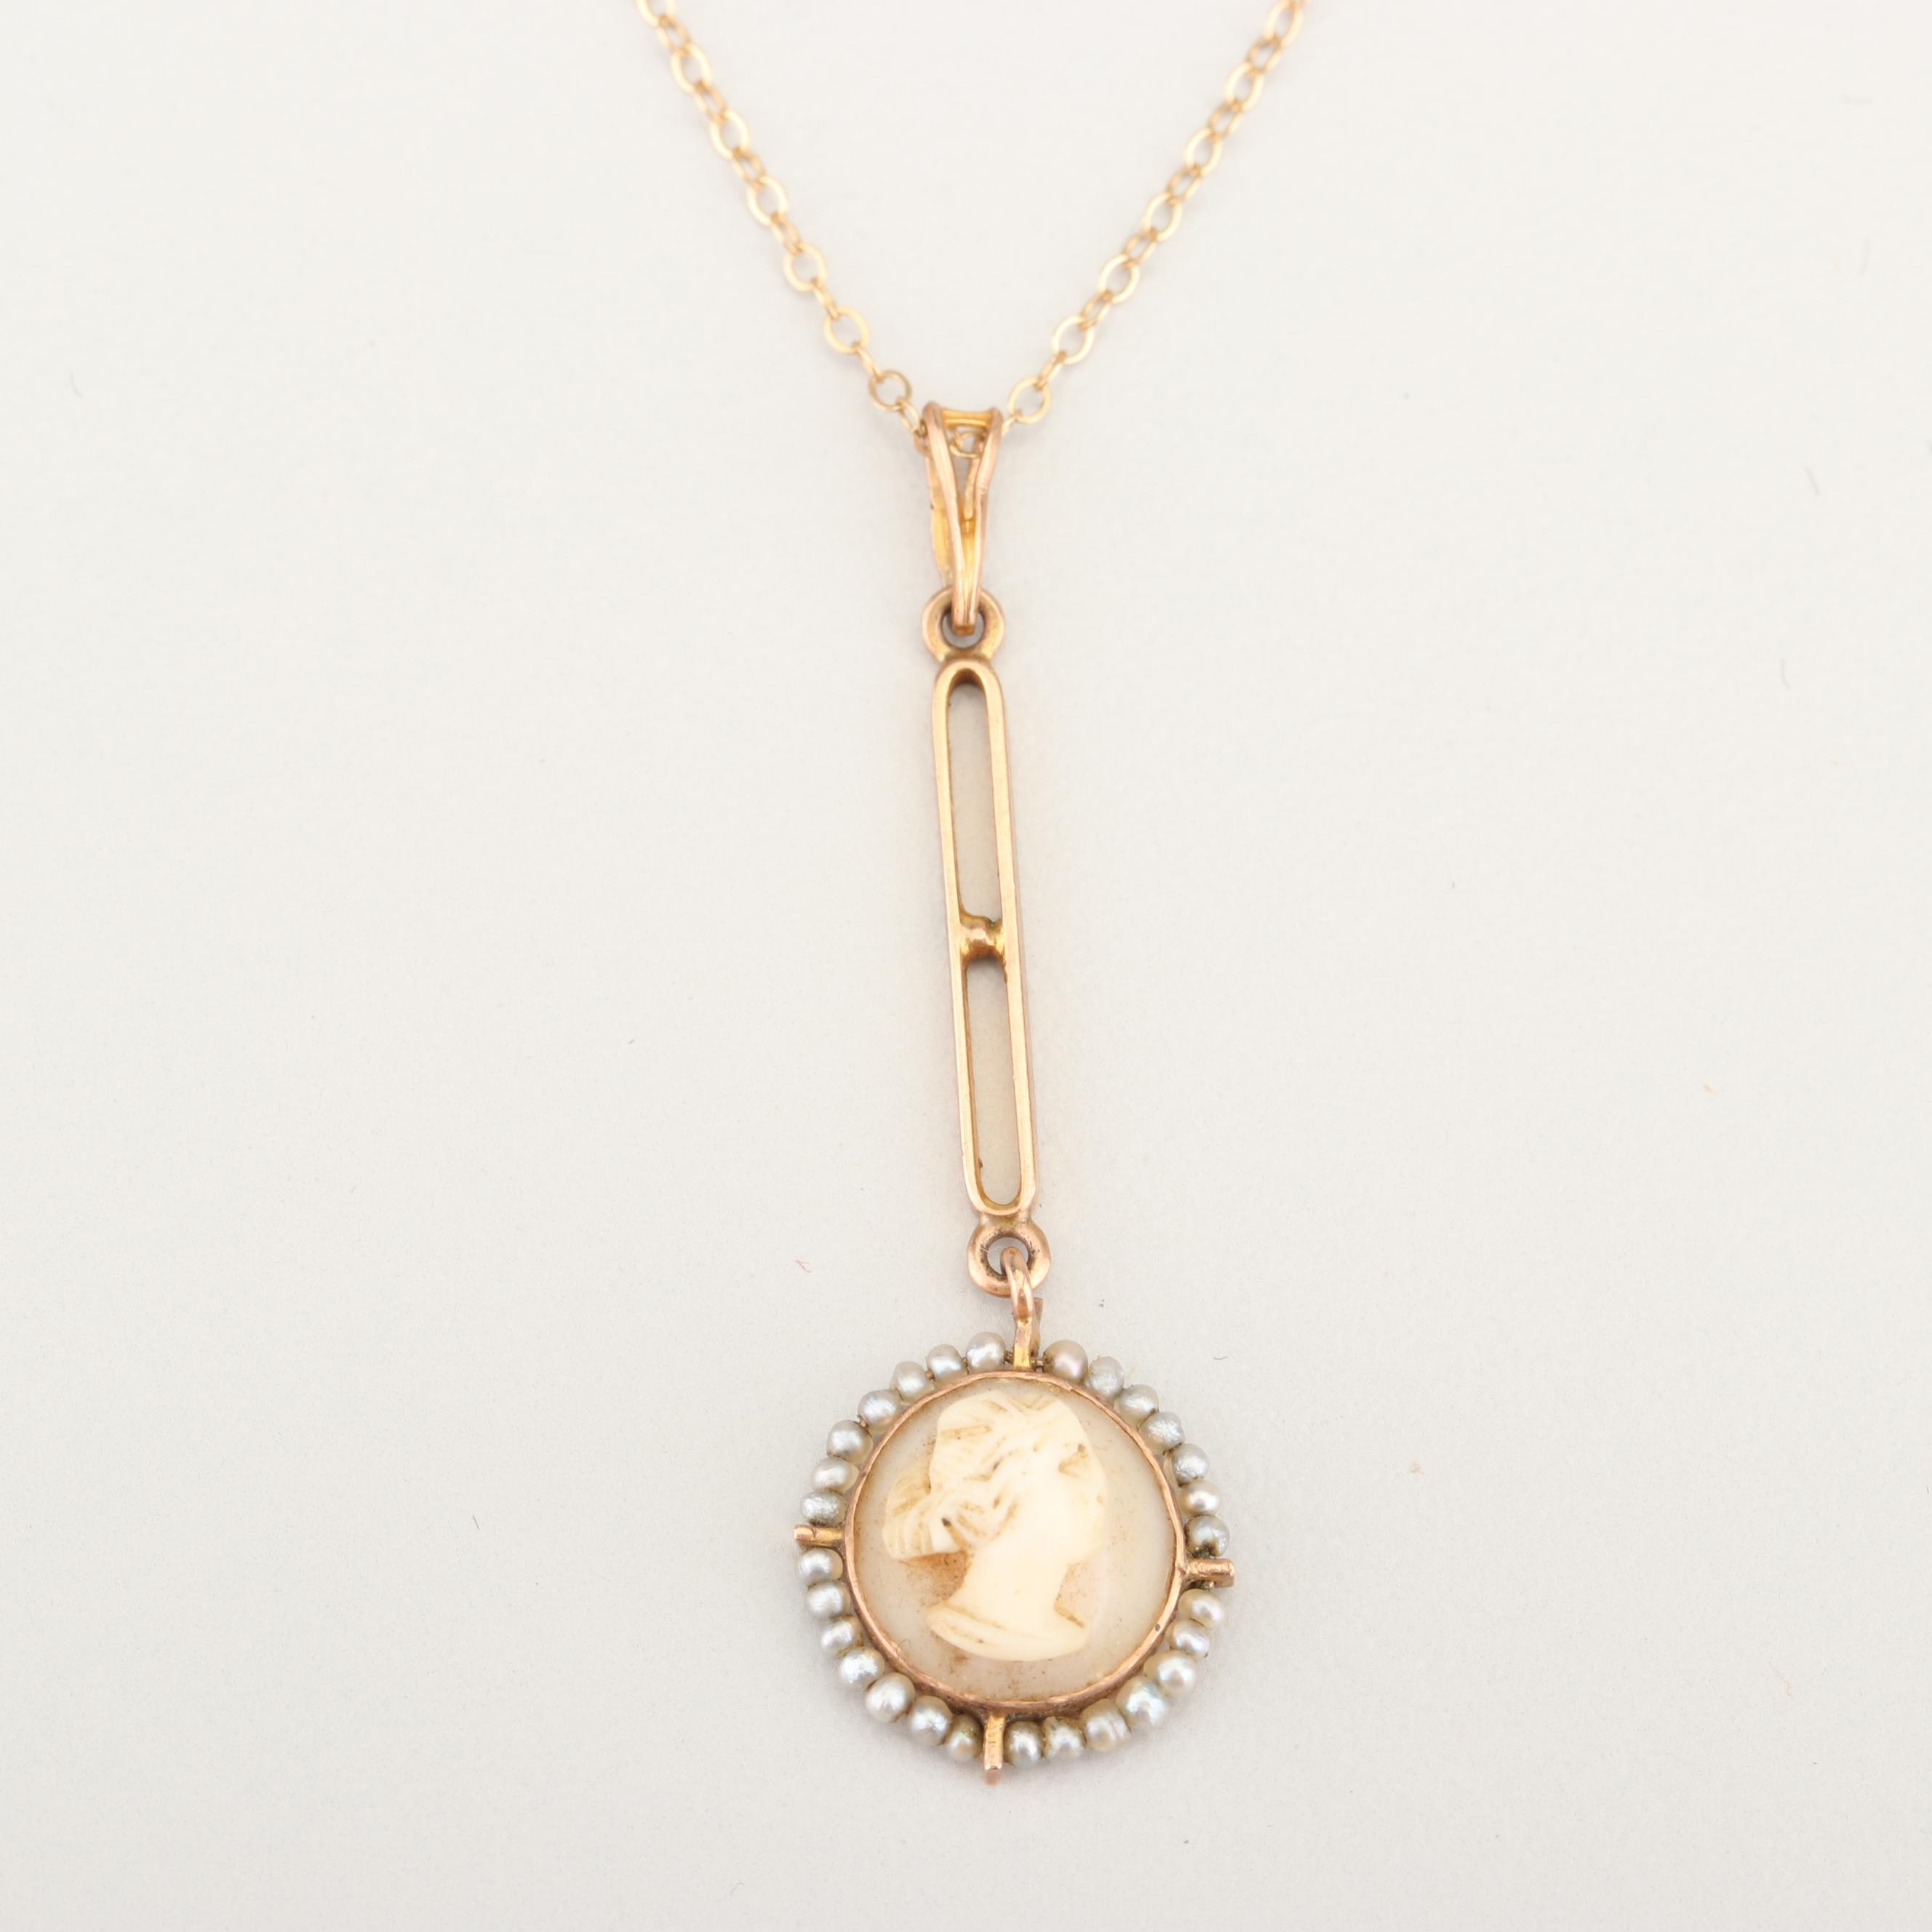 Vintage 10K Yellow Gold Cameo and Seed Pearl Pendant on a 14K Gold Chain